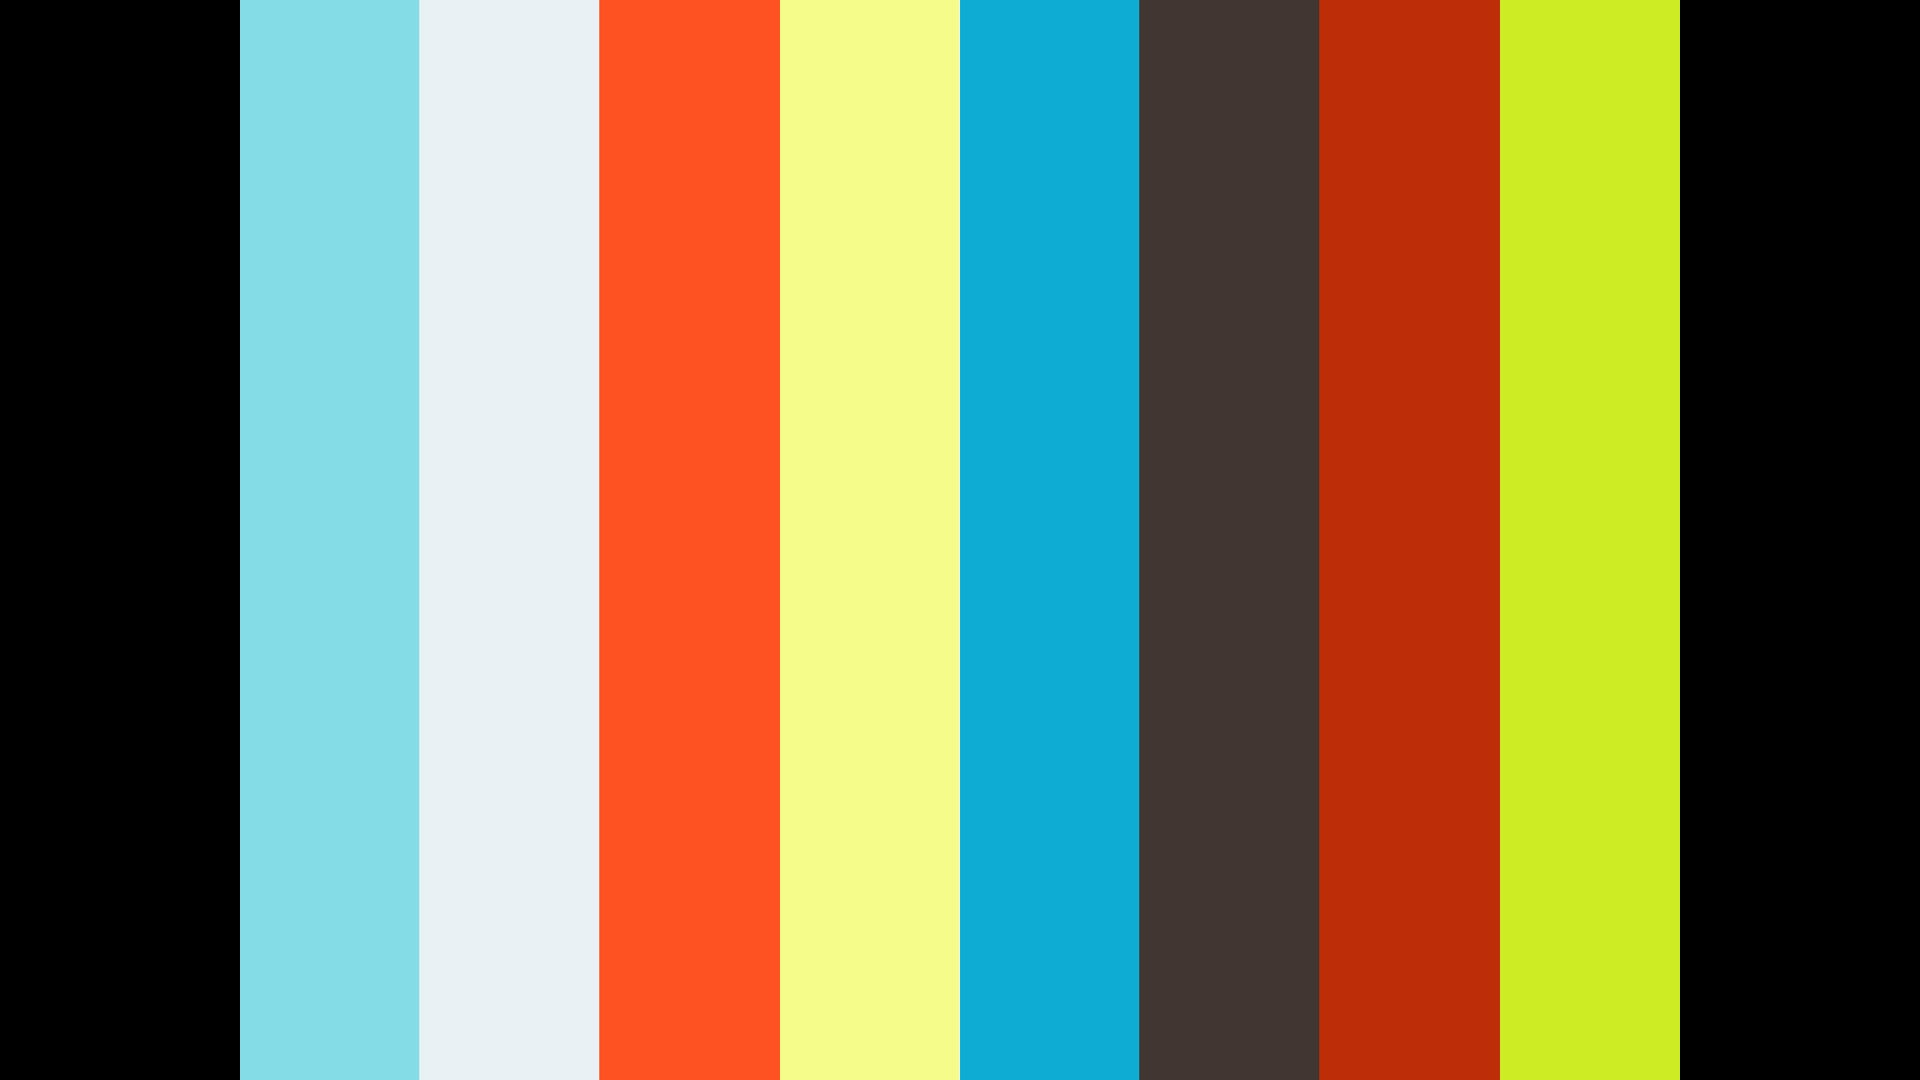 Positioned March 29 Vimeo